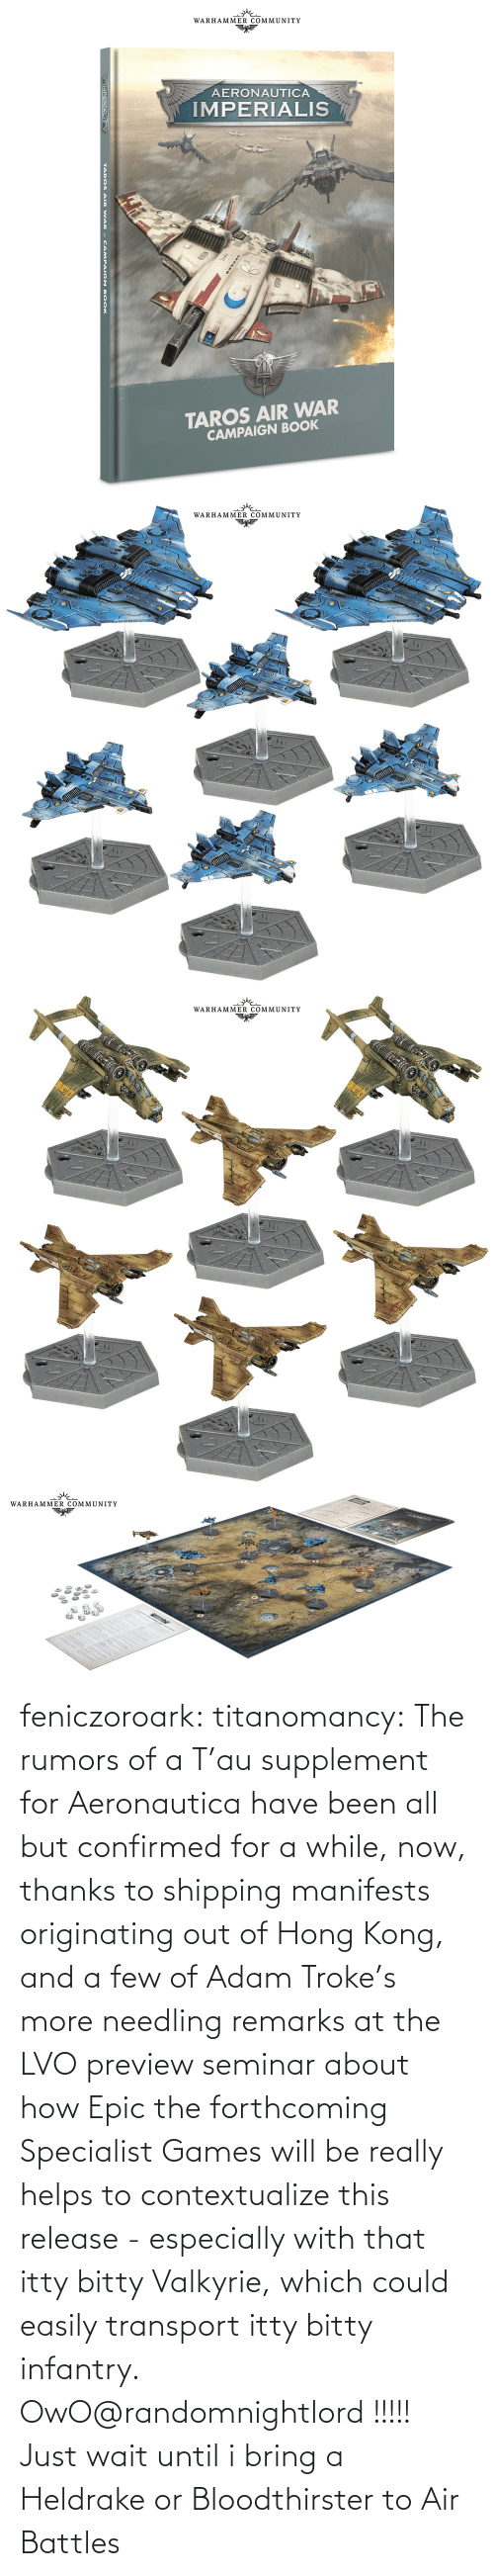 Hong Kong: feniczoroark:  titanomancy:  The rumors of a T'au supplement for Aeronautica have been all but confirmed for a while, now, thanks to shipping manifests originating out of Hong Kong, and a few of Adam Troke's more needling remarks at the LVO preview seminar about how Epic the forthcoming Specialist Games will be really helps to contextualize this release - especially with that itty bitty Valkyrie, which could easily transport itty bitty infantry.   OwO@randomnightlord !!!!!   Just wait until i bring a Heldrake or Bloodthirster to Air Battles